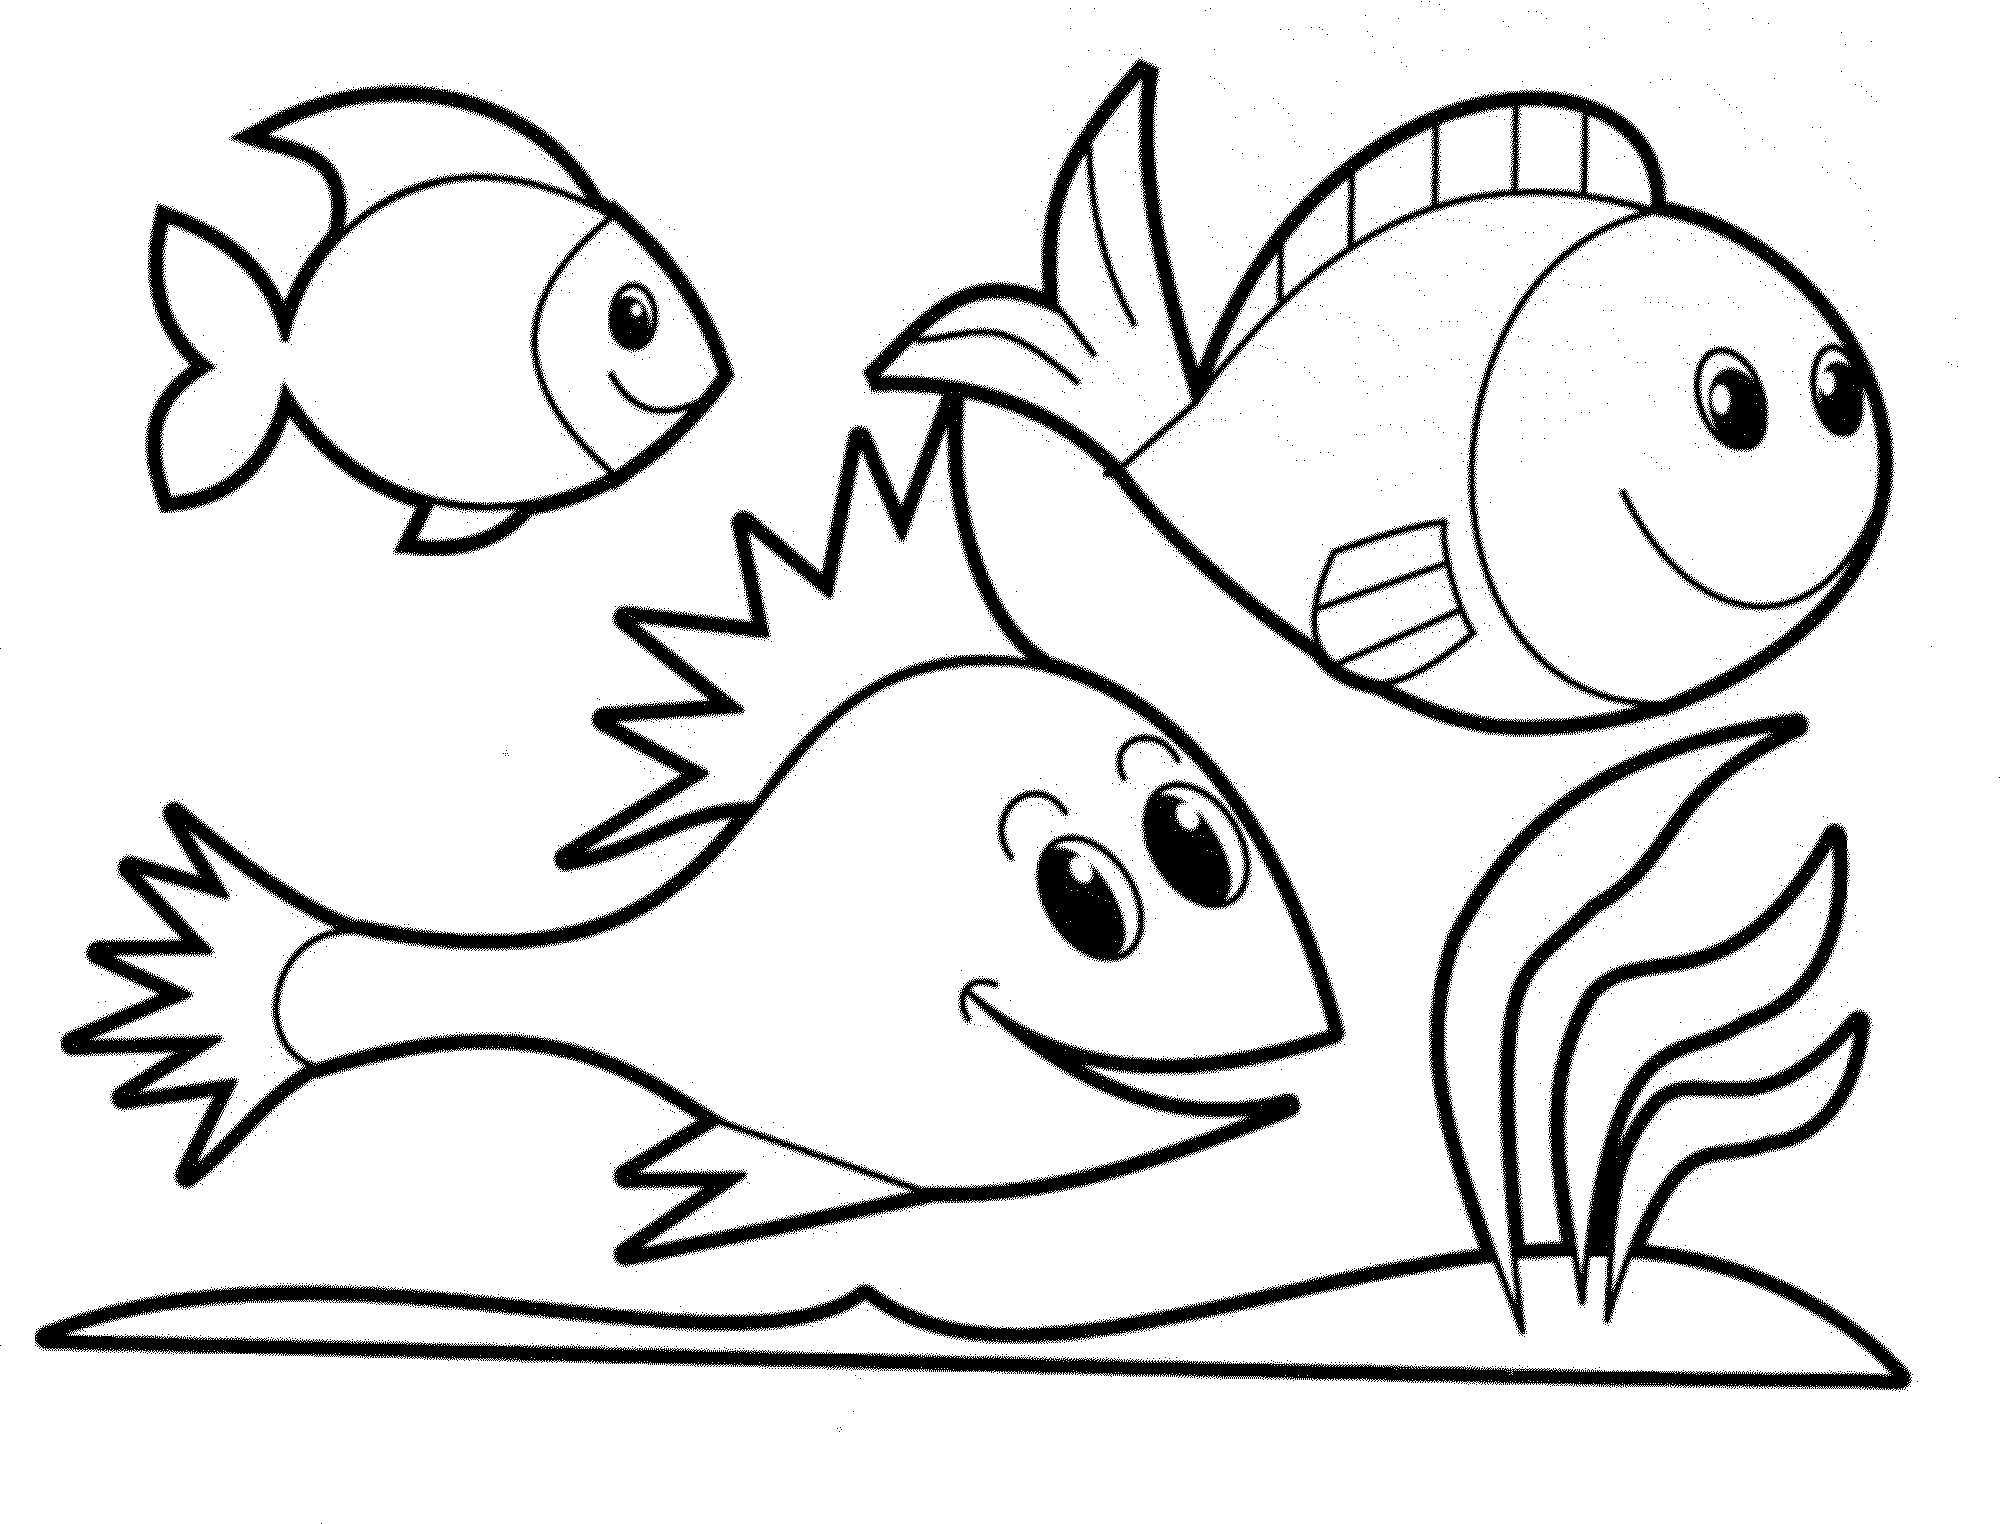 detailed fish coloring pages adult free fish coloring pages realistic coloring pages detailed fish pages coloring